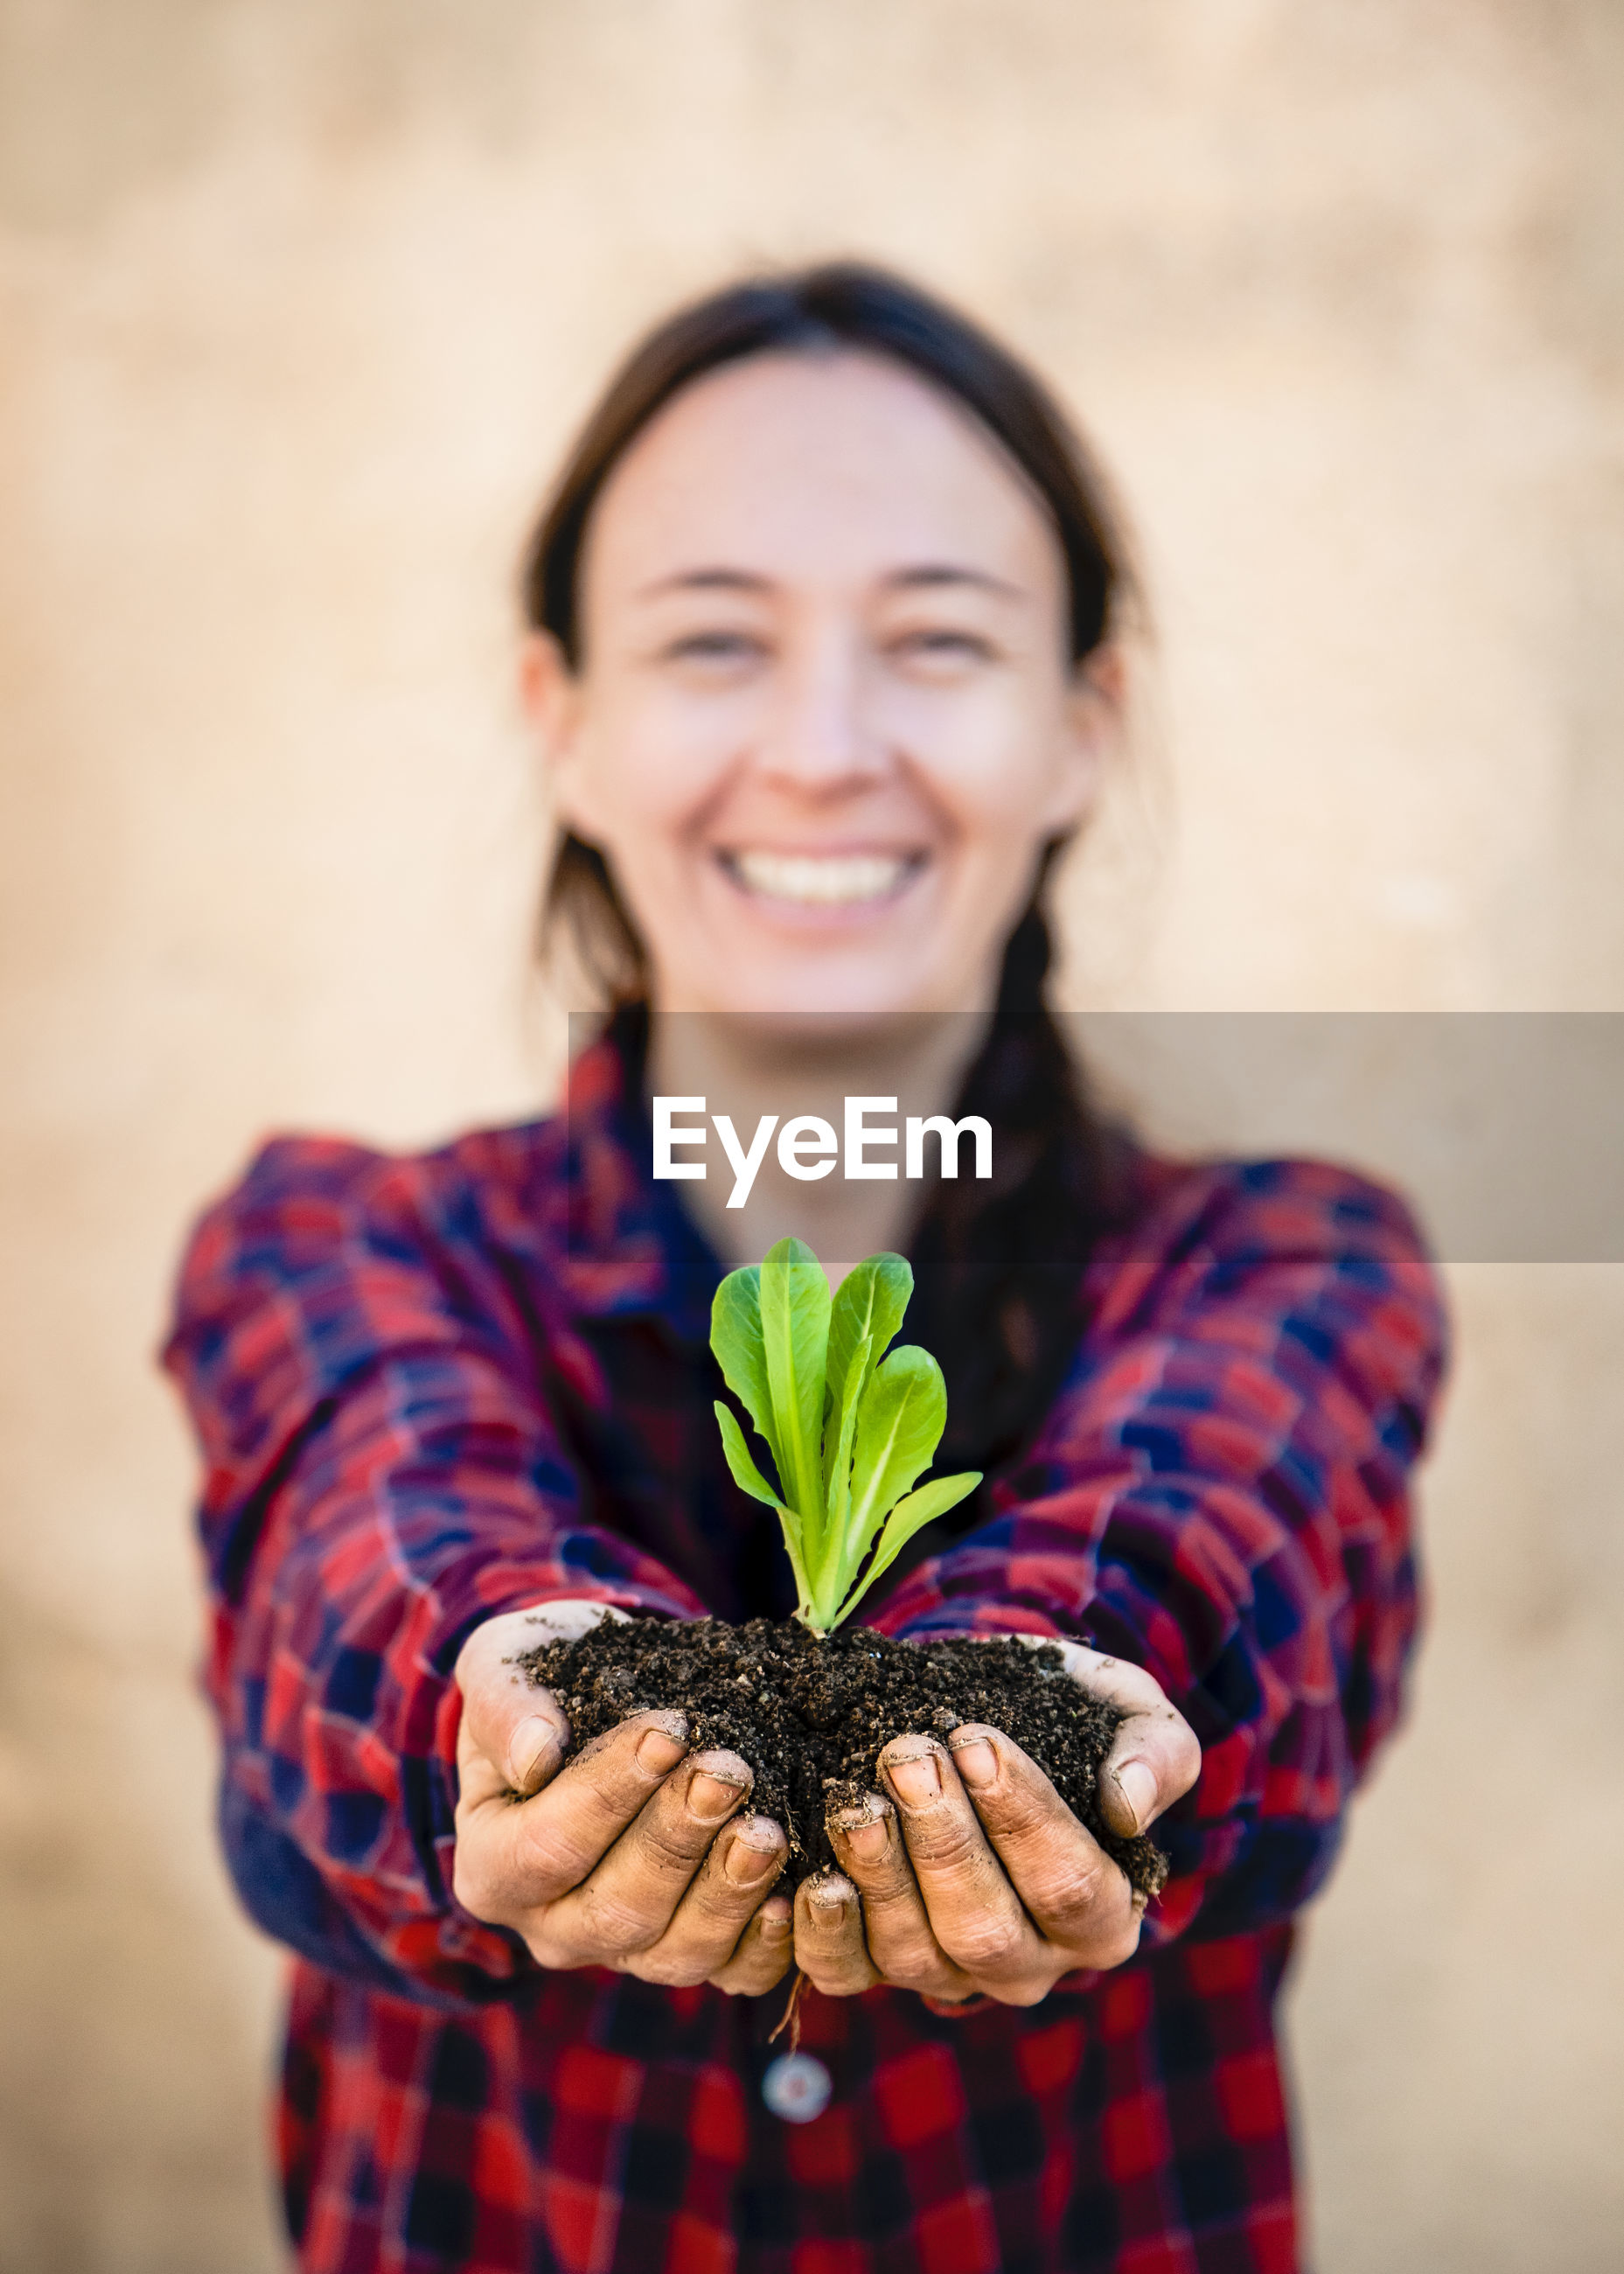 Portrait of smiling woman holding plant in soil